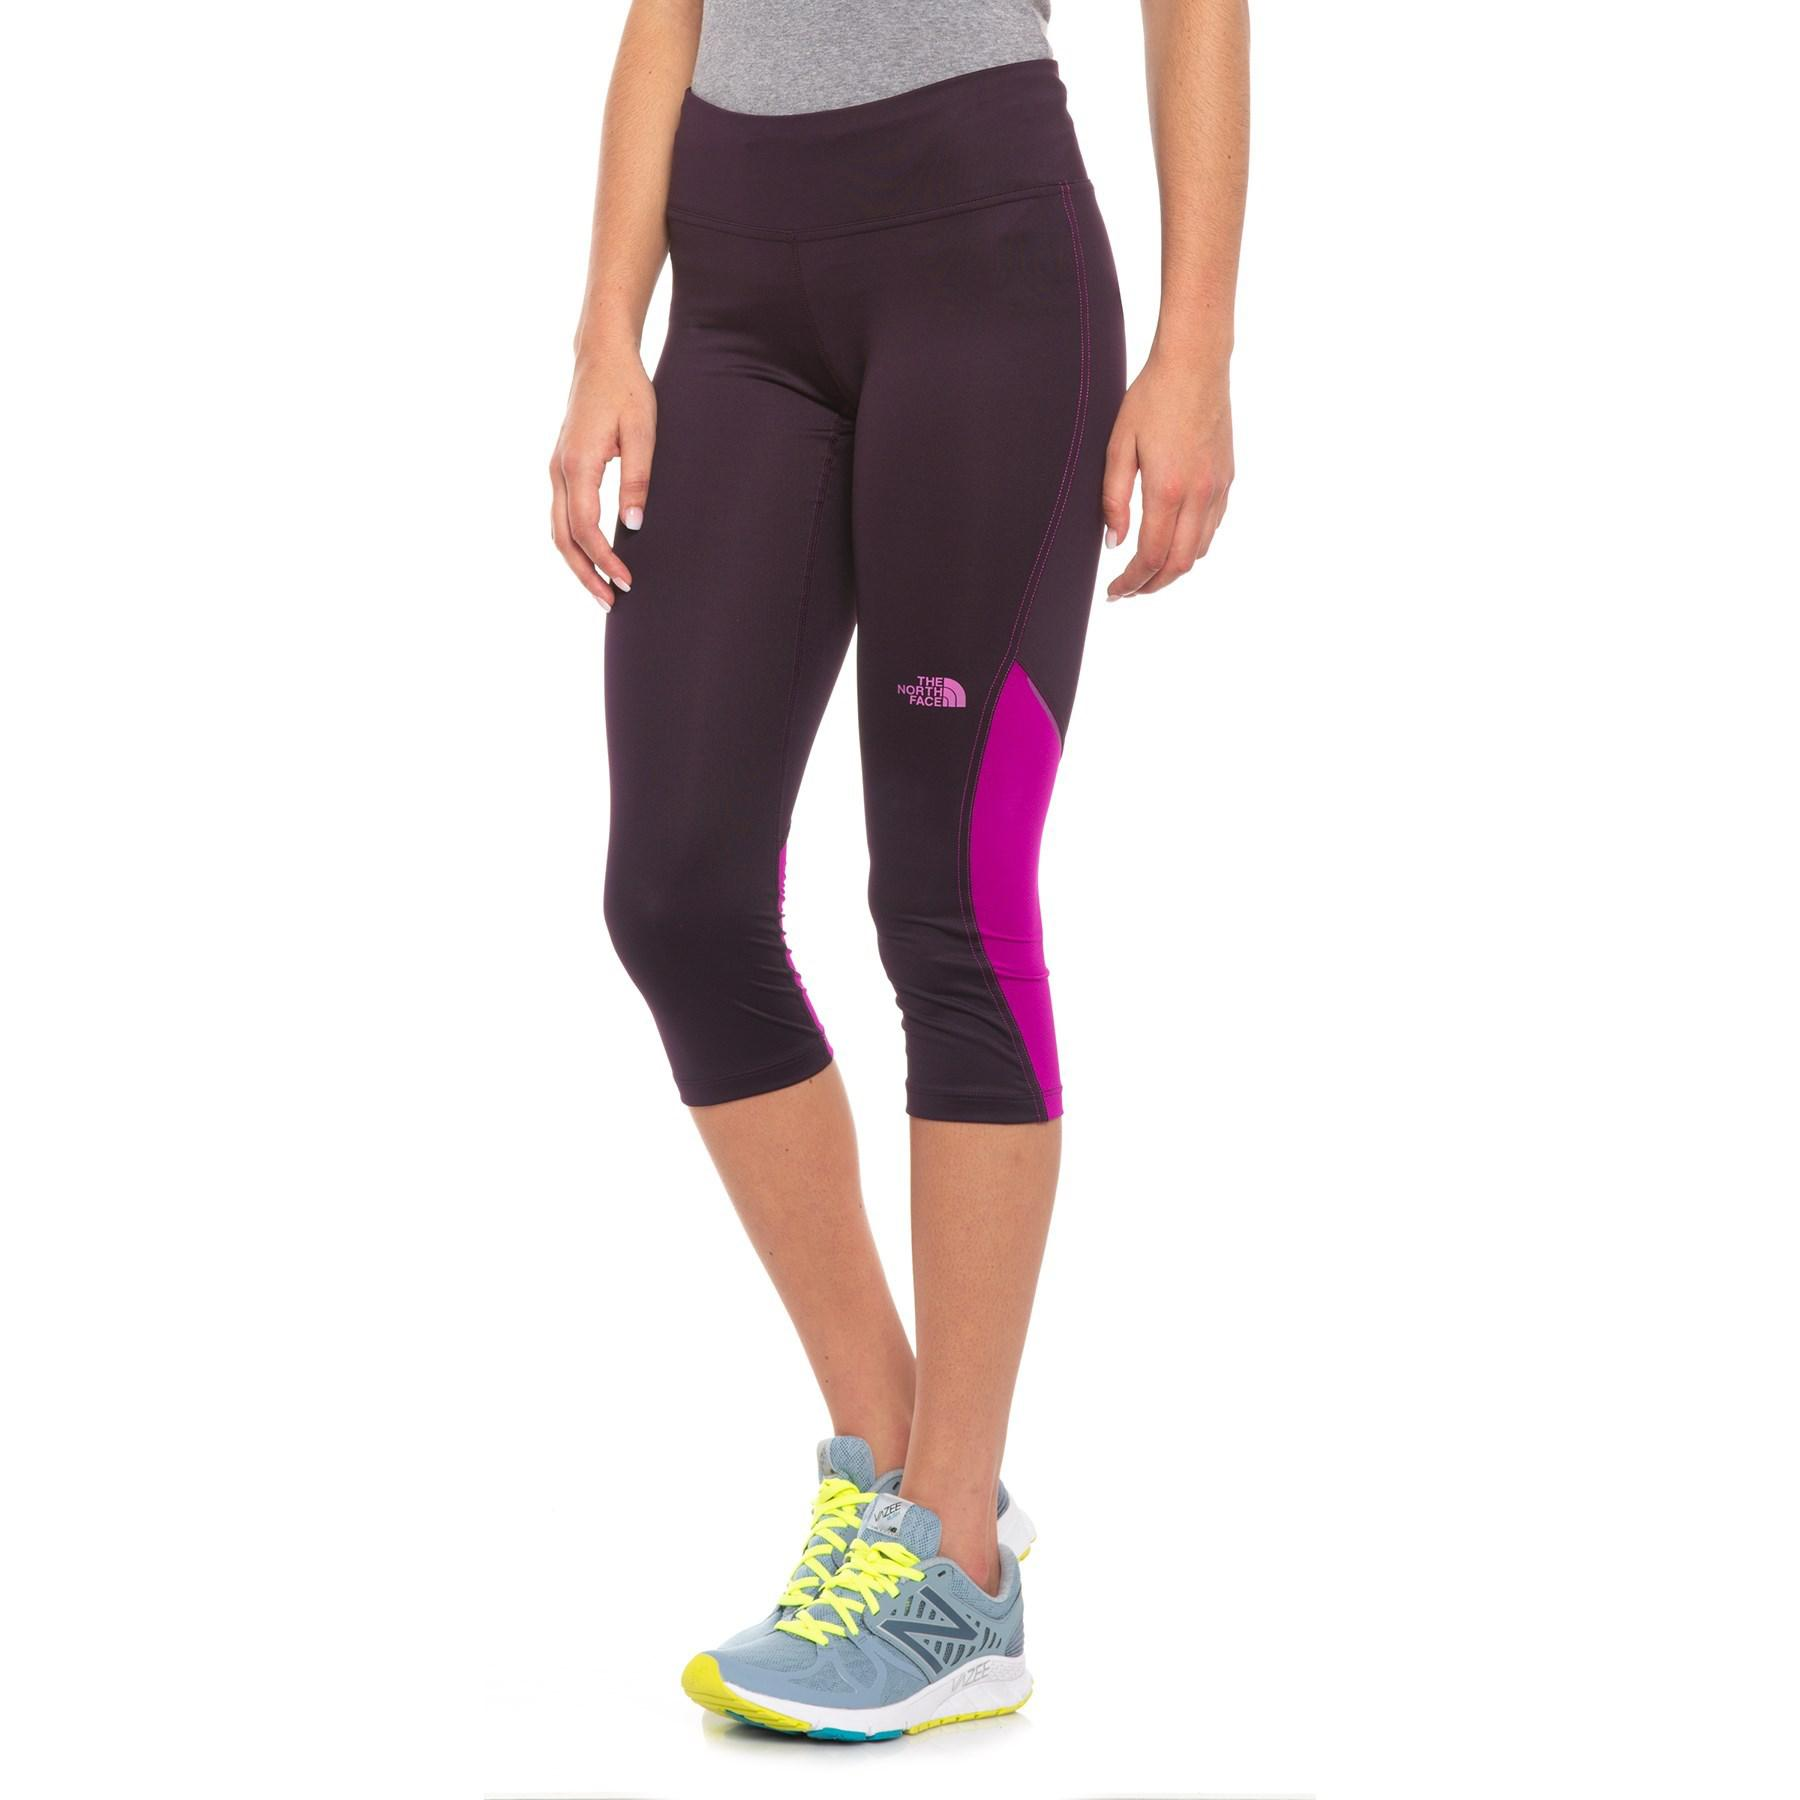 98f1c713ae874 The North Face Ambition Mid-rise Capris (for Women) in Purple - Lyst